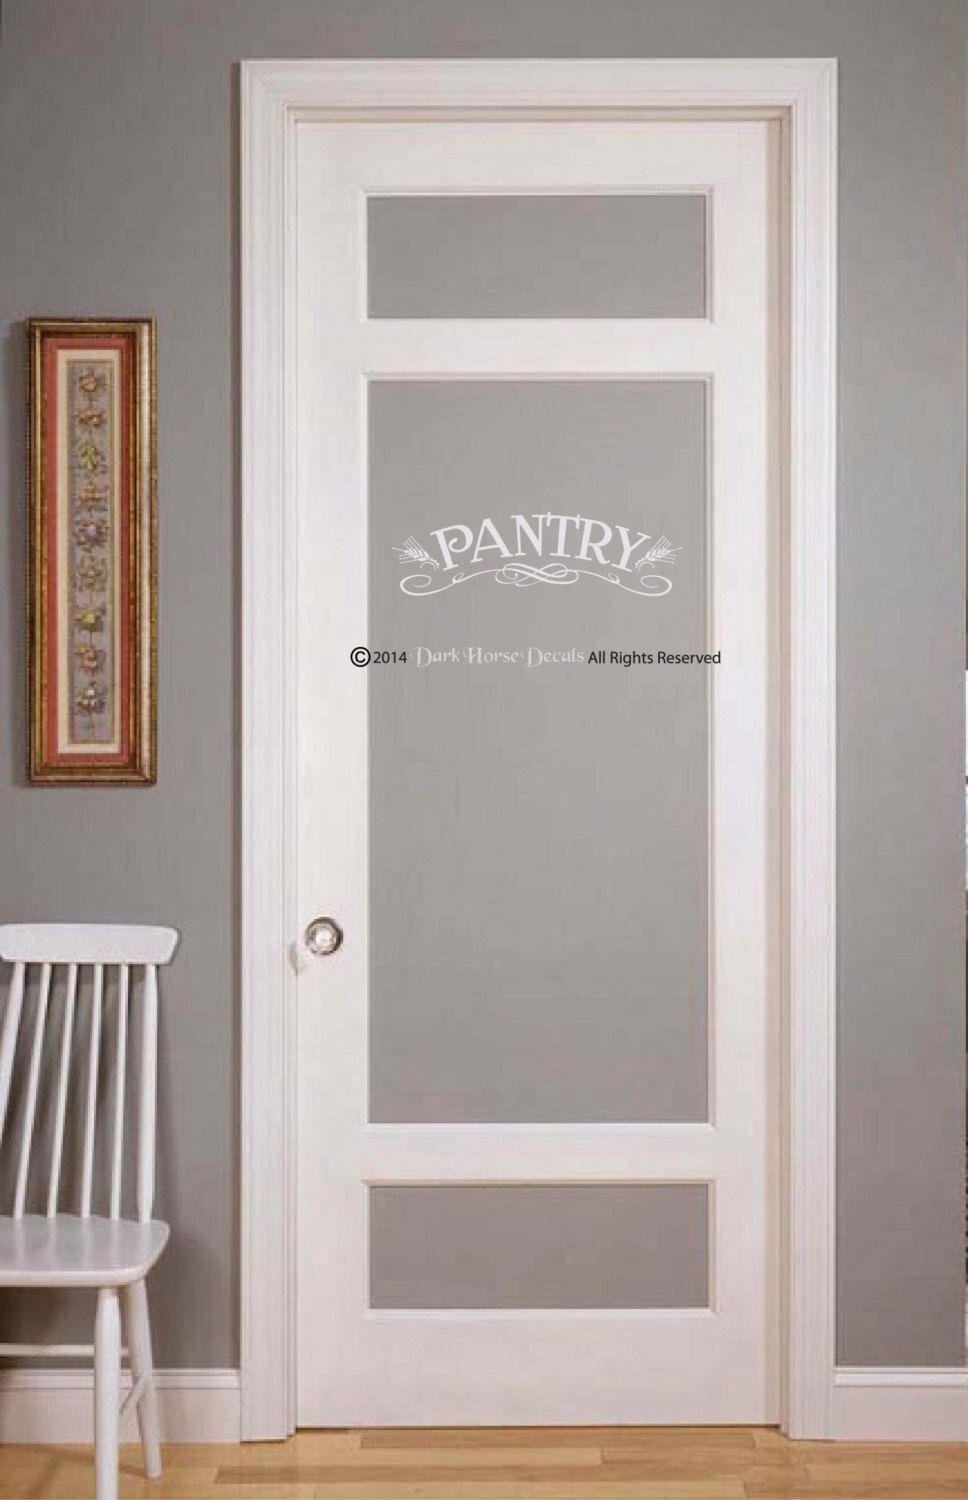 Pantry or Laundry Decal for Wall or Glass Door